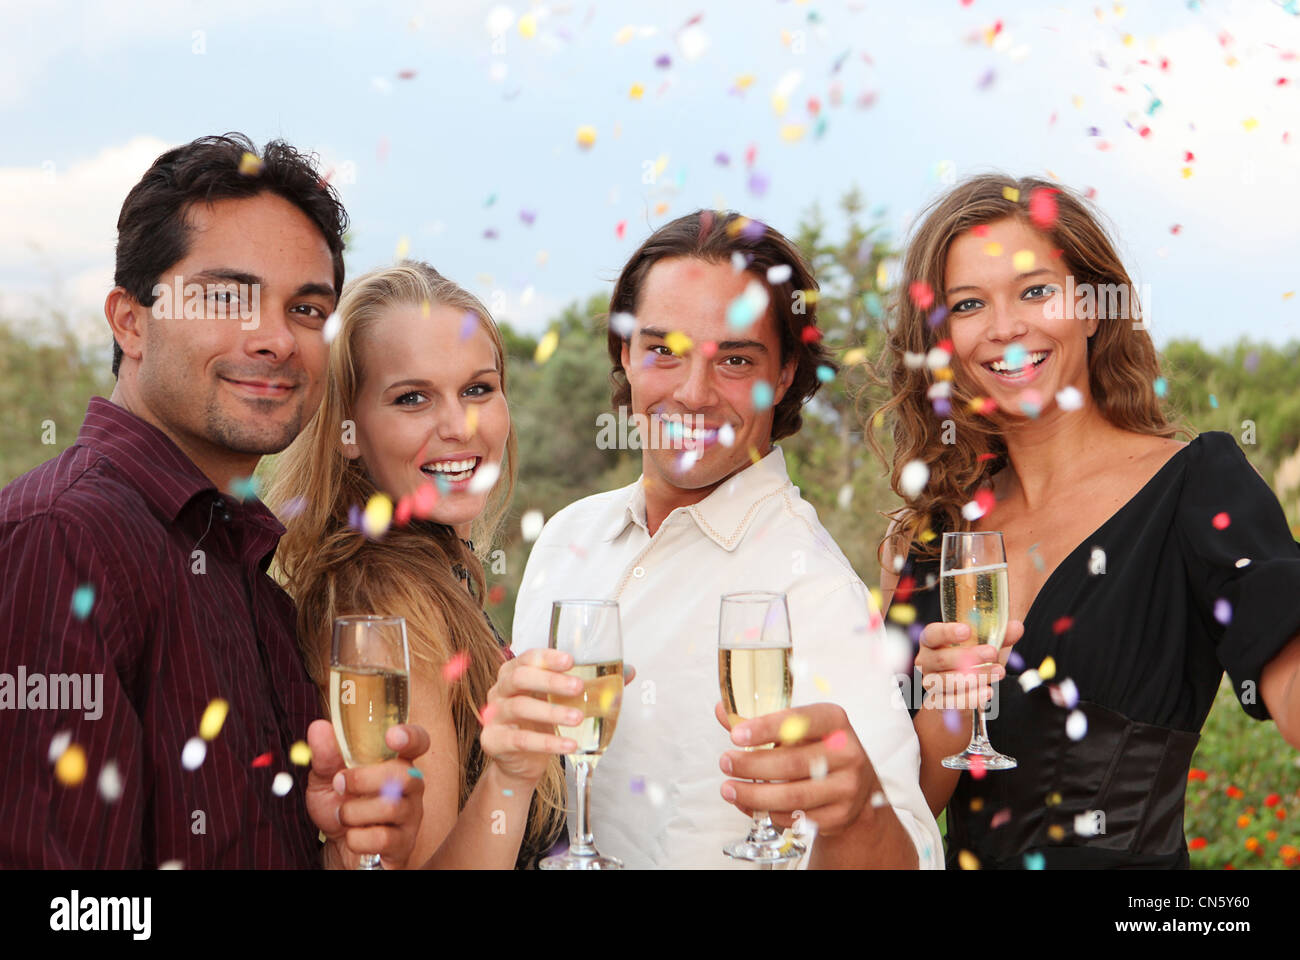 celebration party with champagne and confetti - Stock Image